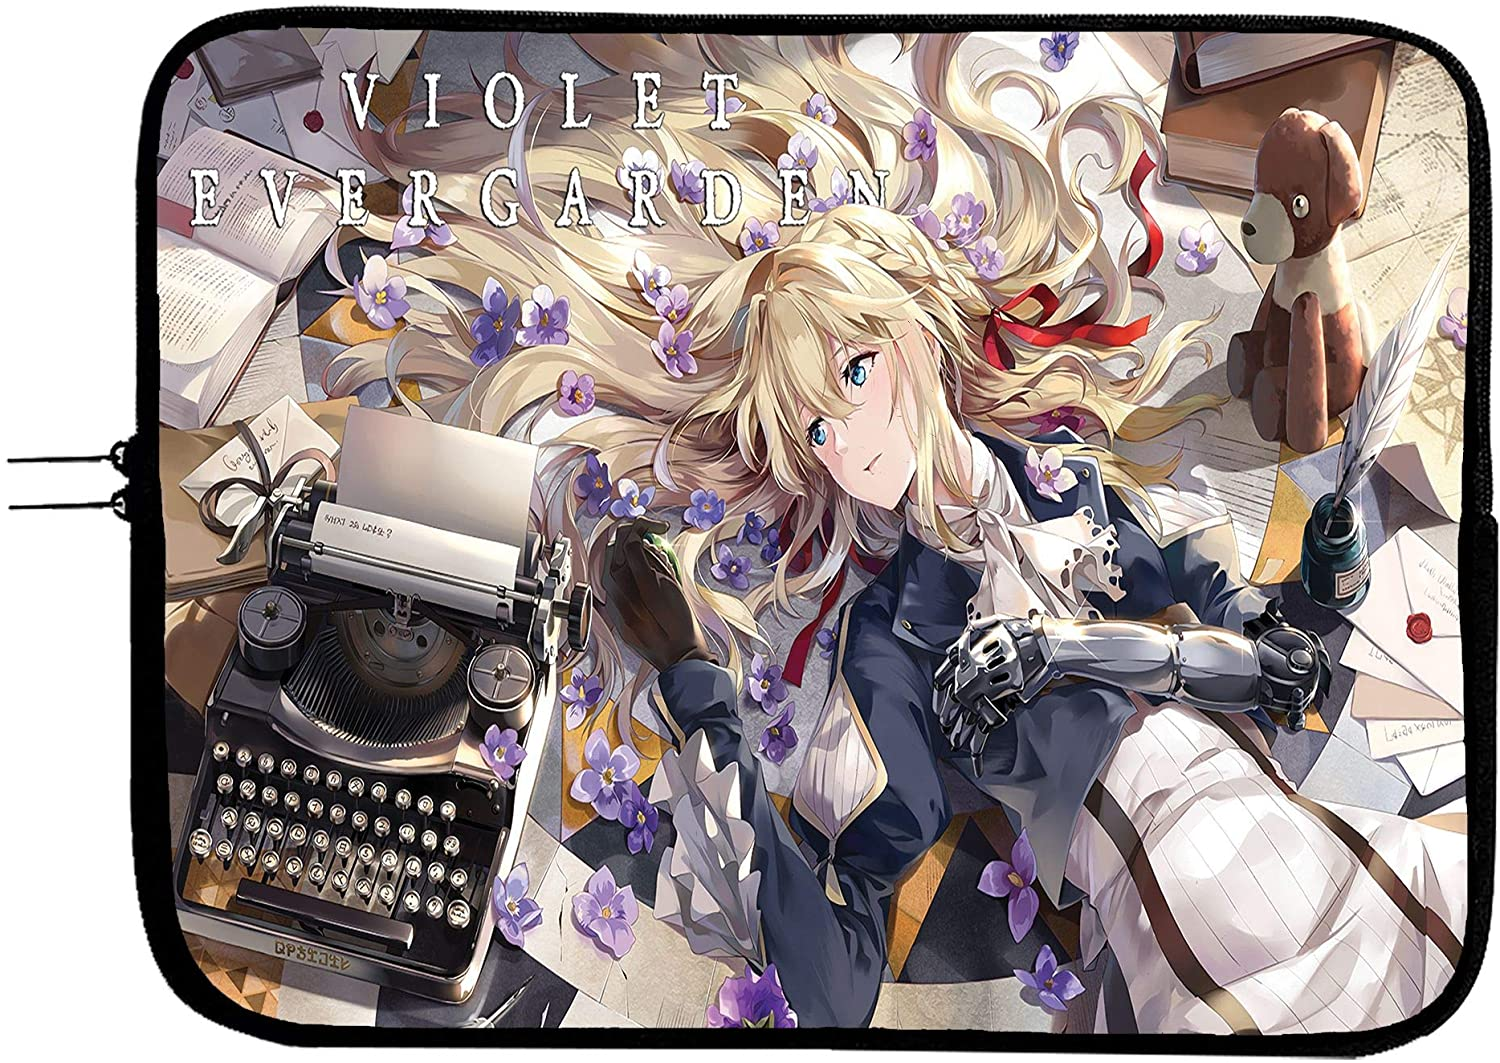 Violet Evergarden Anime Laptop Sleeve Bag 15 Inch with Mousepad Surface/Protect Your Notebook Mac Book Pro MacBook Air iPad or Windows Devices in Style! / Anime Laptop Sleeve Case